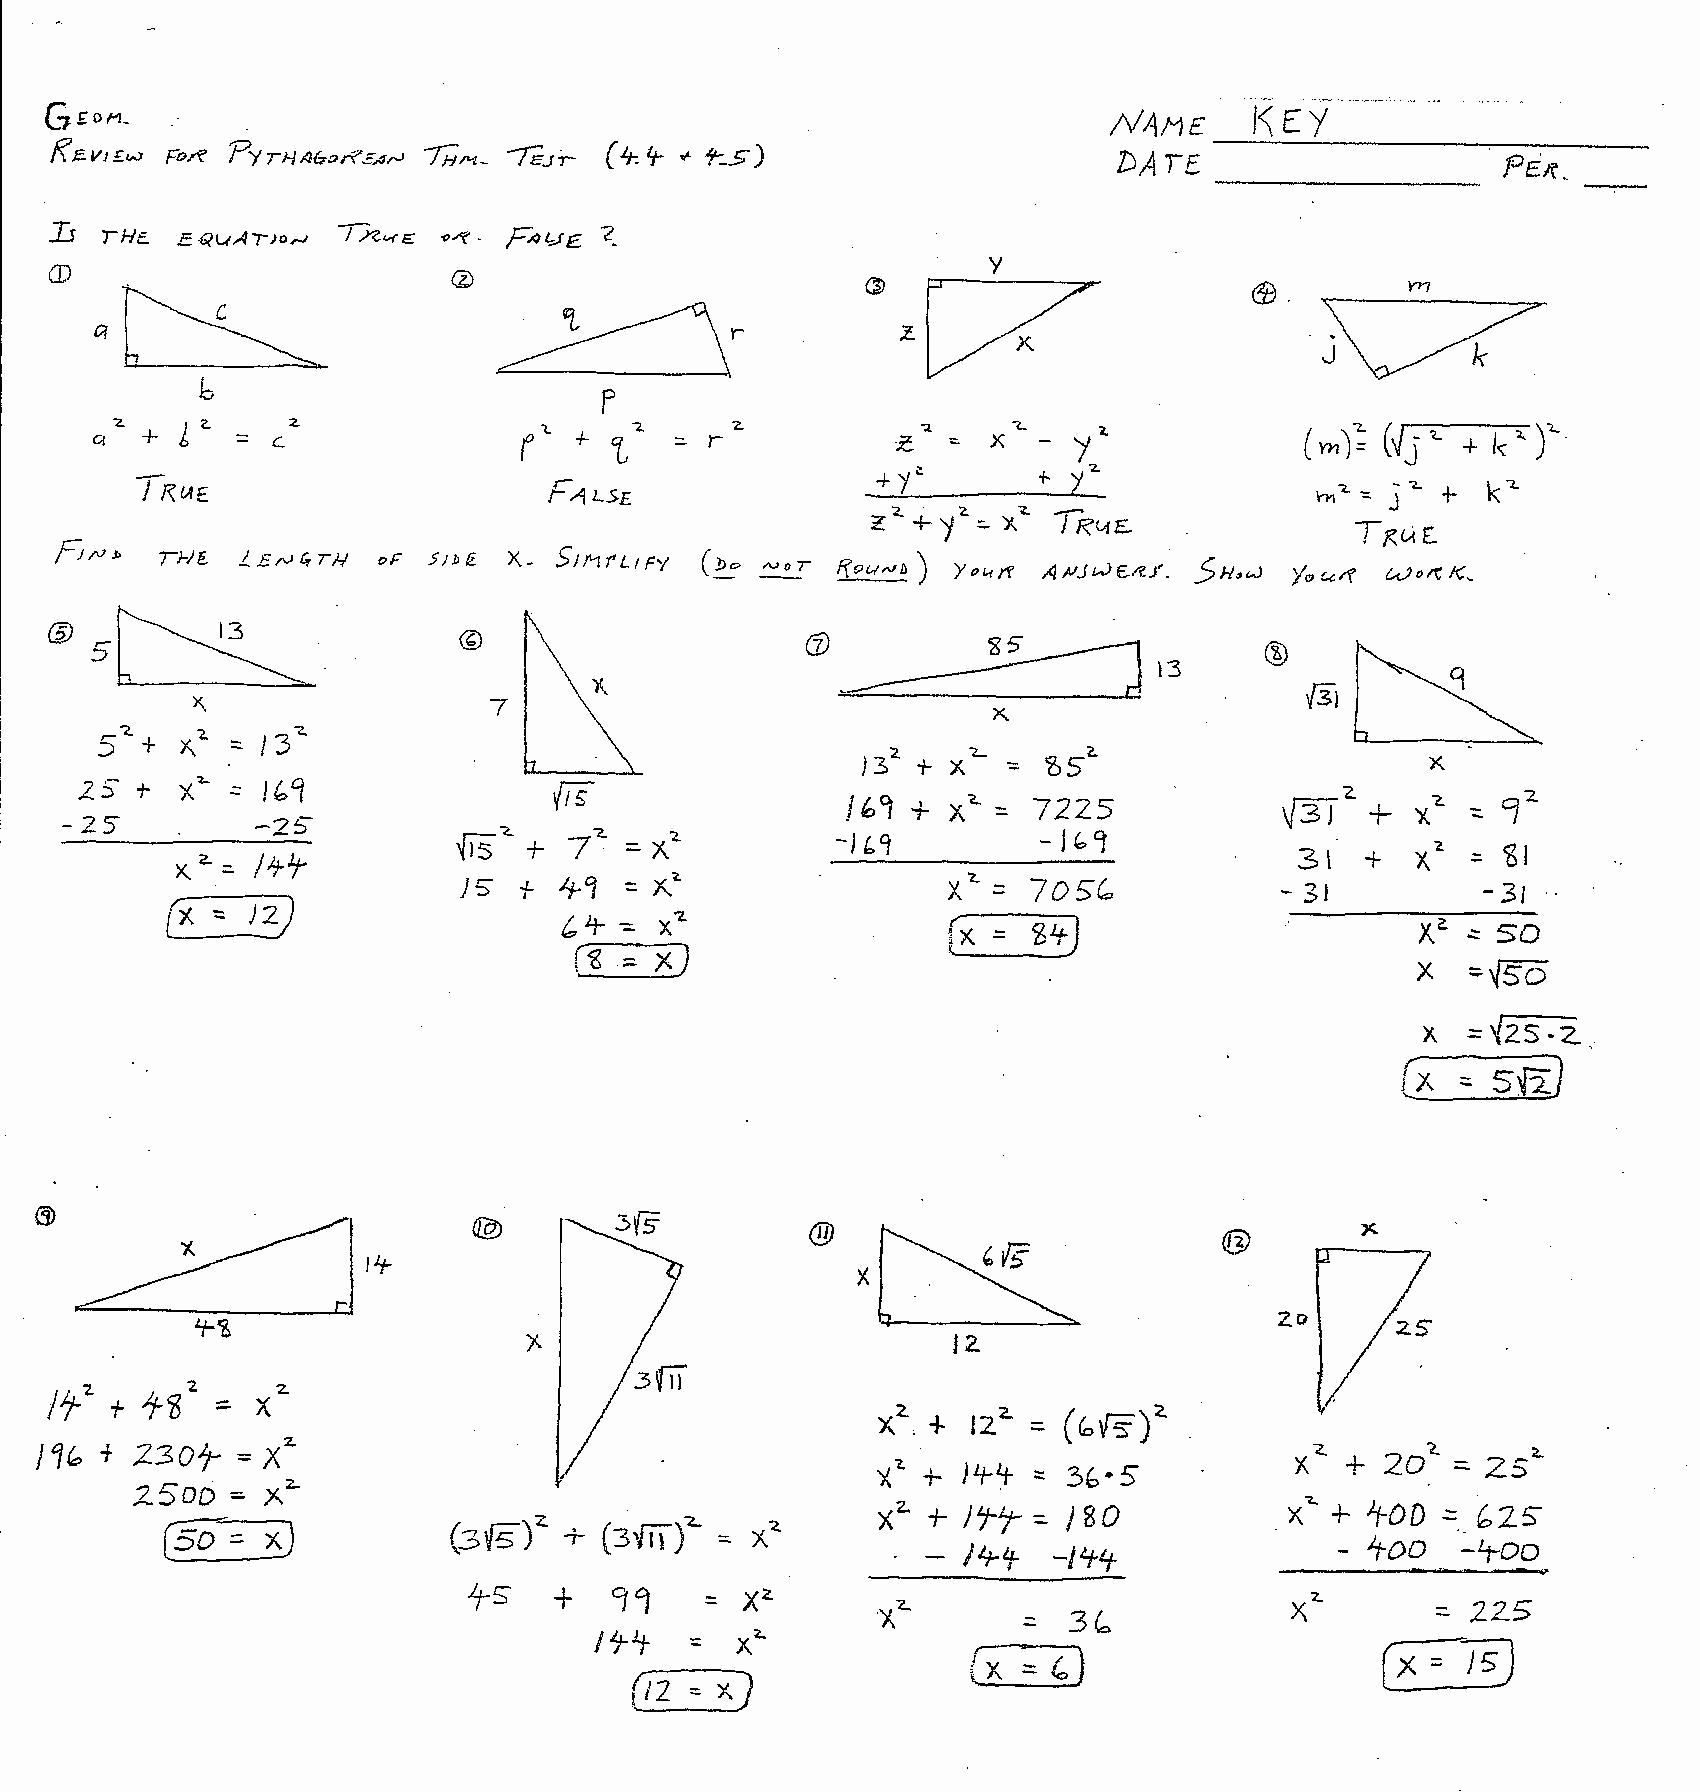 hight resolution of Identifying Congruent Triangles Worksheet   Printable Worksheets and  Activities for Teachers